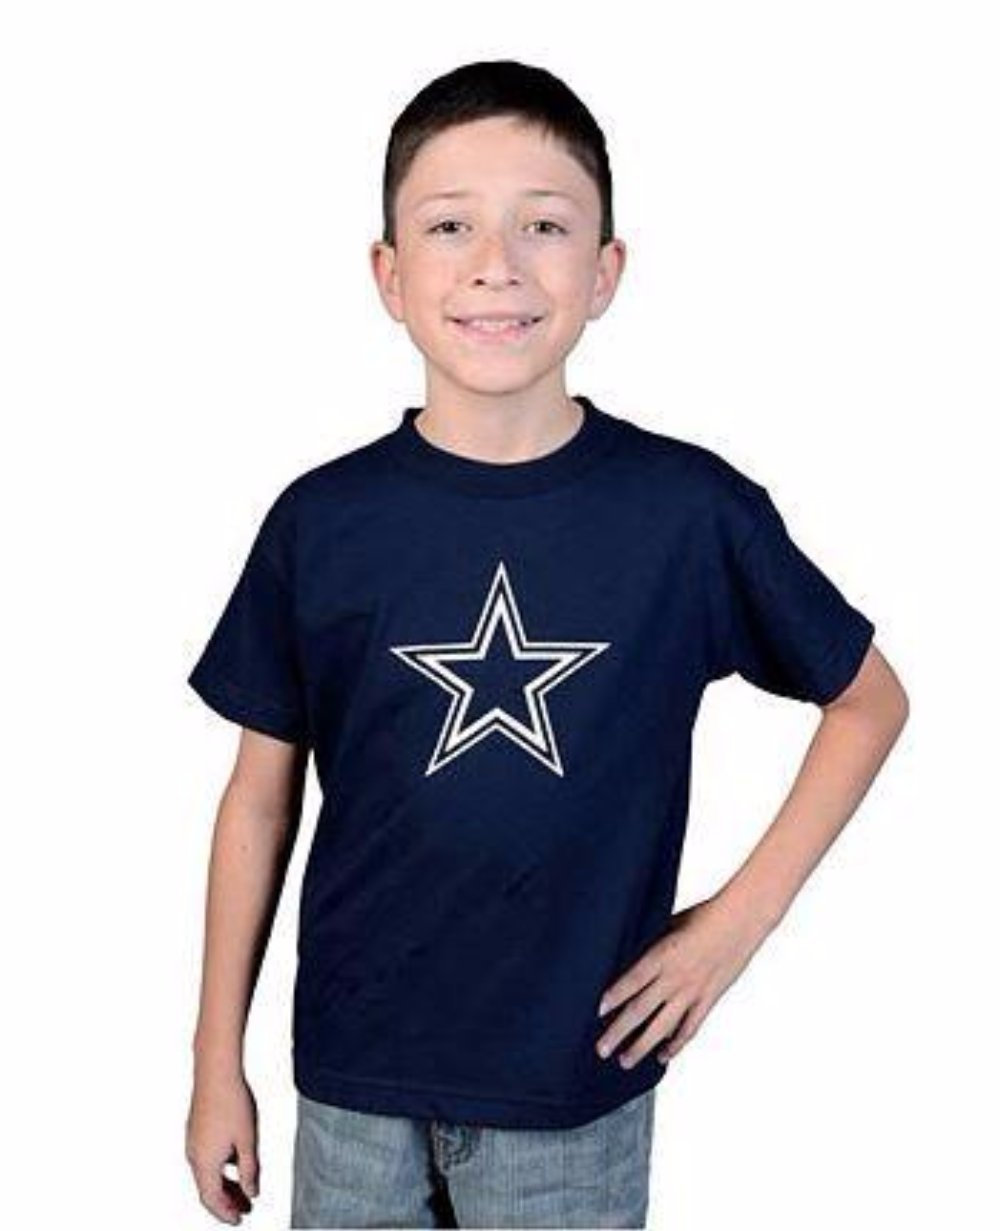 f9341da9628 Dallas Cowboys Kids Navy Blue Logo Premier T-Shirt - | eBay